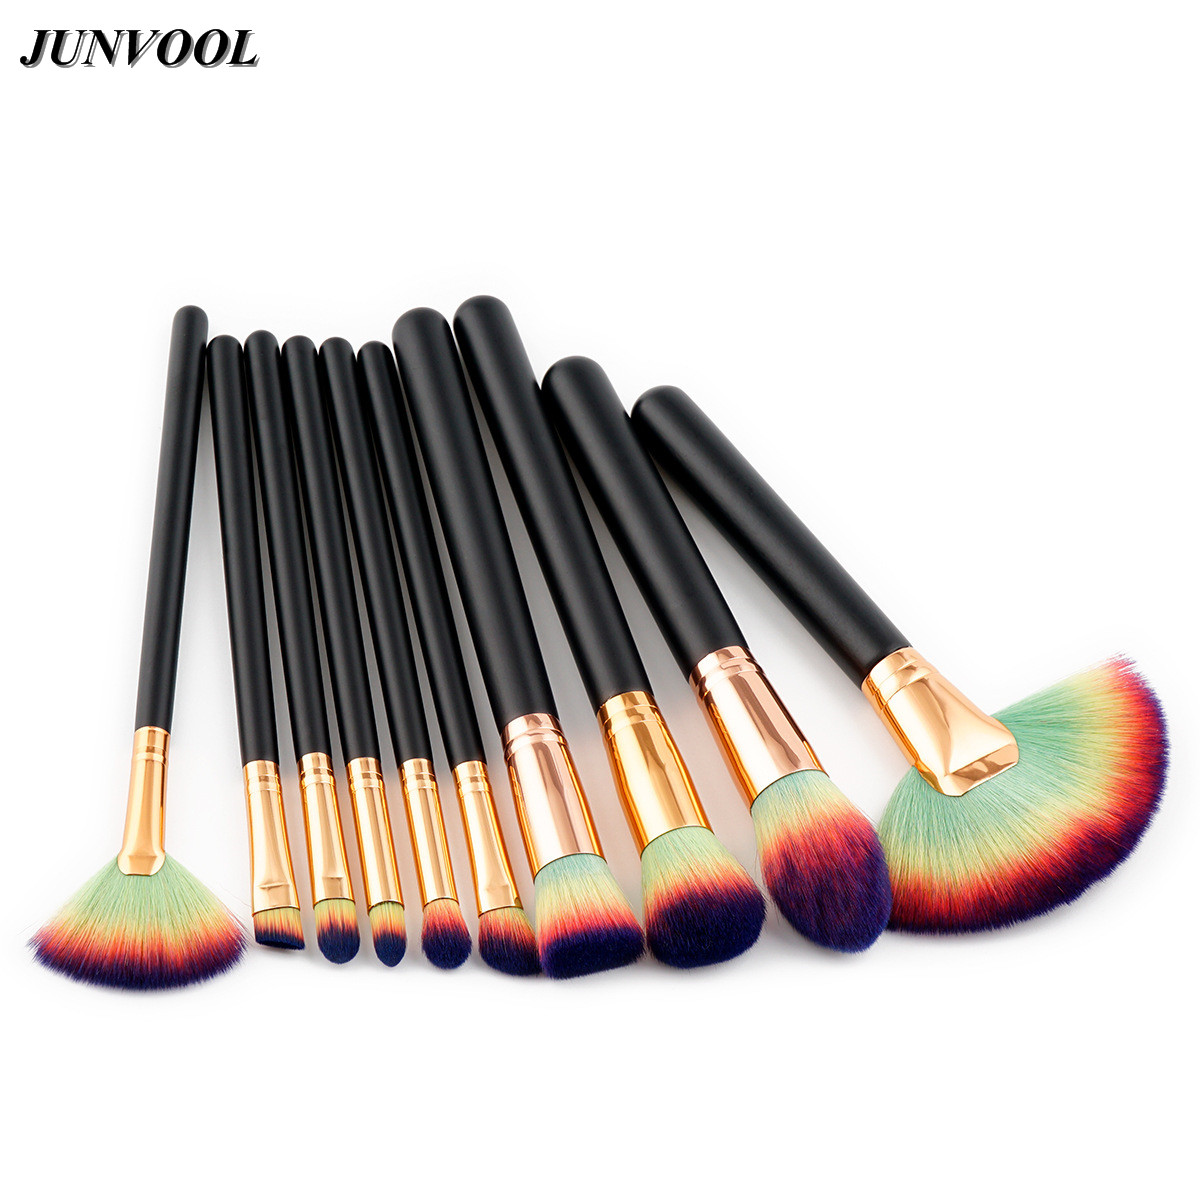 Complete Makeup Fan Brush Professional Luxury Set 10Pcs Rainbow Make Up Tools Kit Powder Blending Shadow Cosmetic Beauty Brushes 147 pcs portable professional watch repair tool kit set solid hammer spring bar remover watchmaker tools watch adjustment